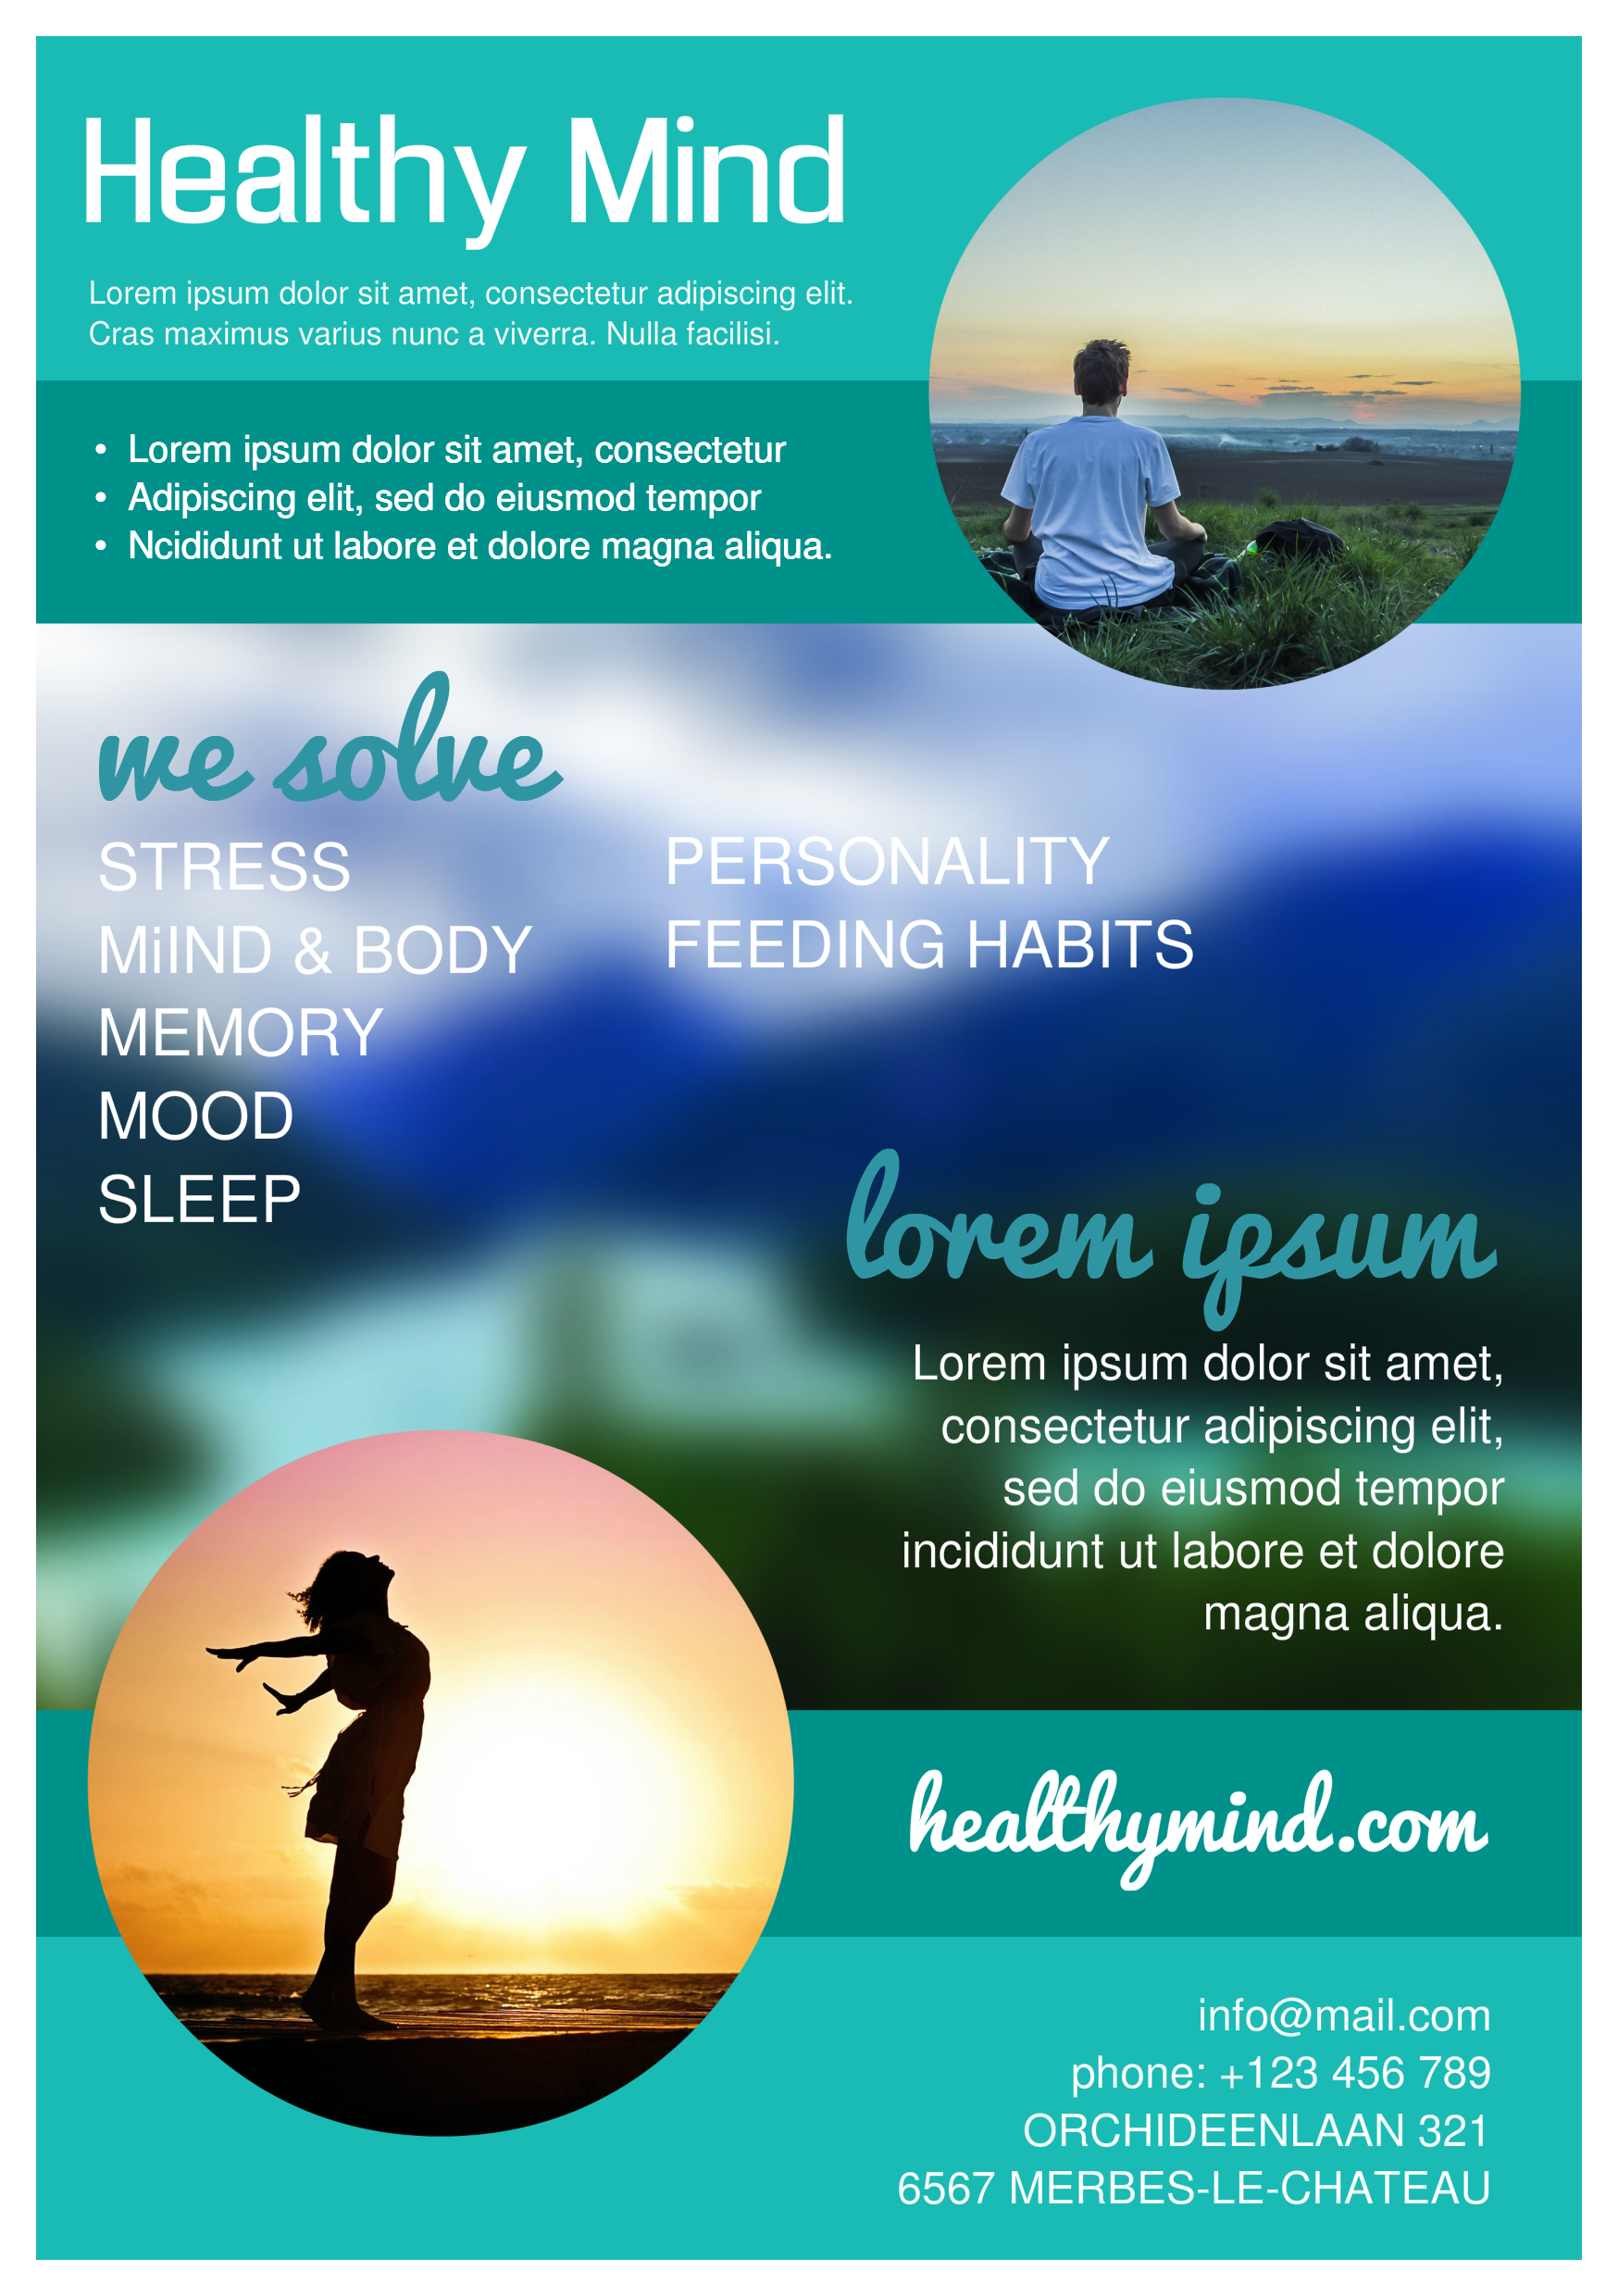 Healthy Mind A Promotional Flyer HttpPremadevideosComA